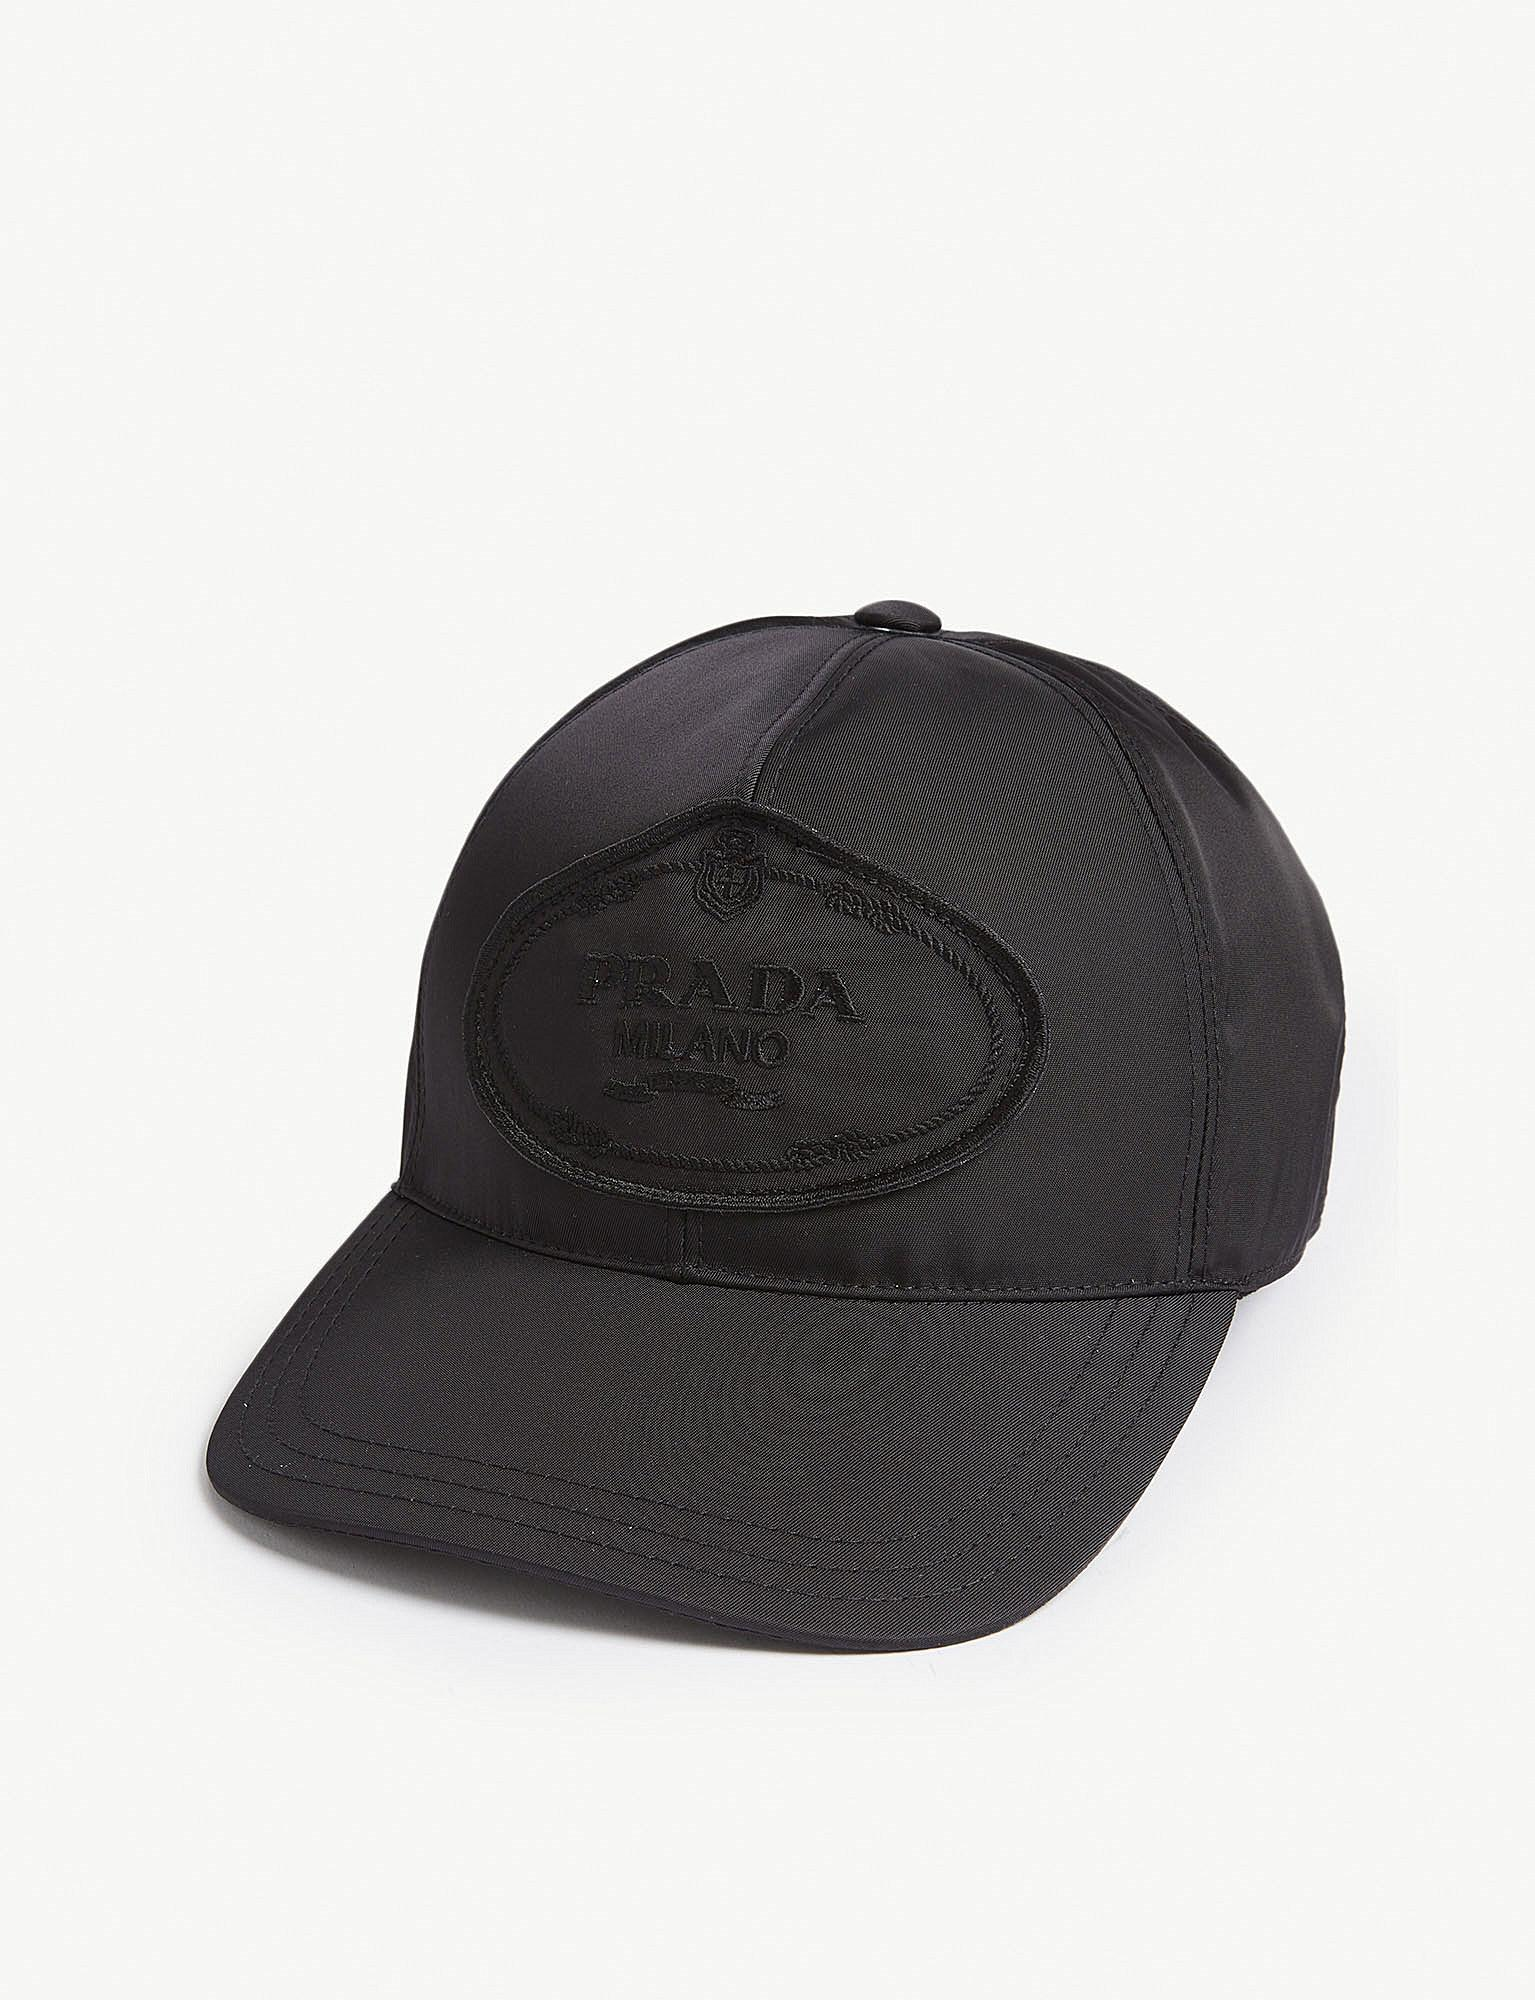 534832f46bf Lyst - Prada Womens Black Logo Nylon Baseball Cap in Black - Save 26%